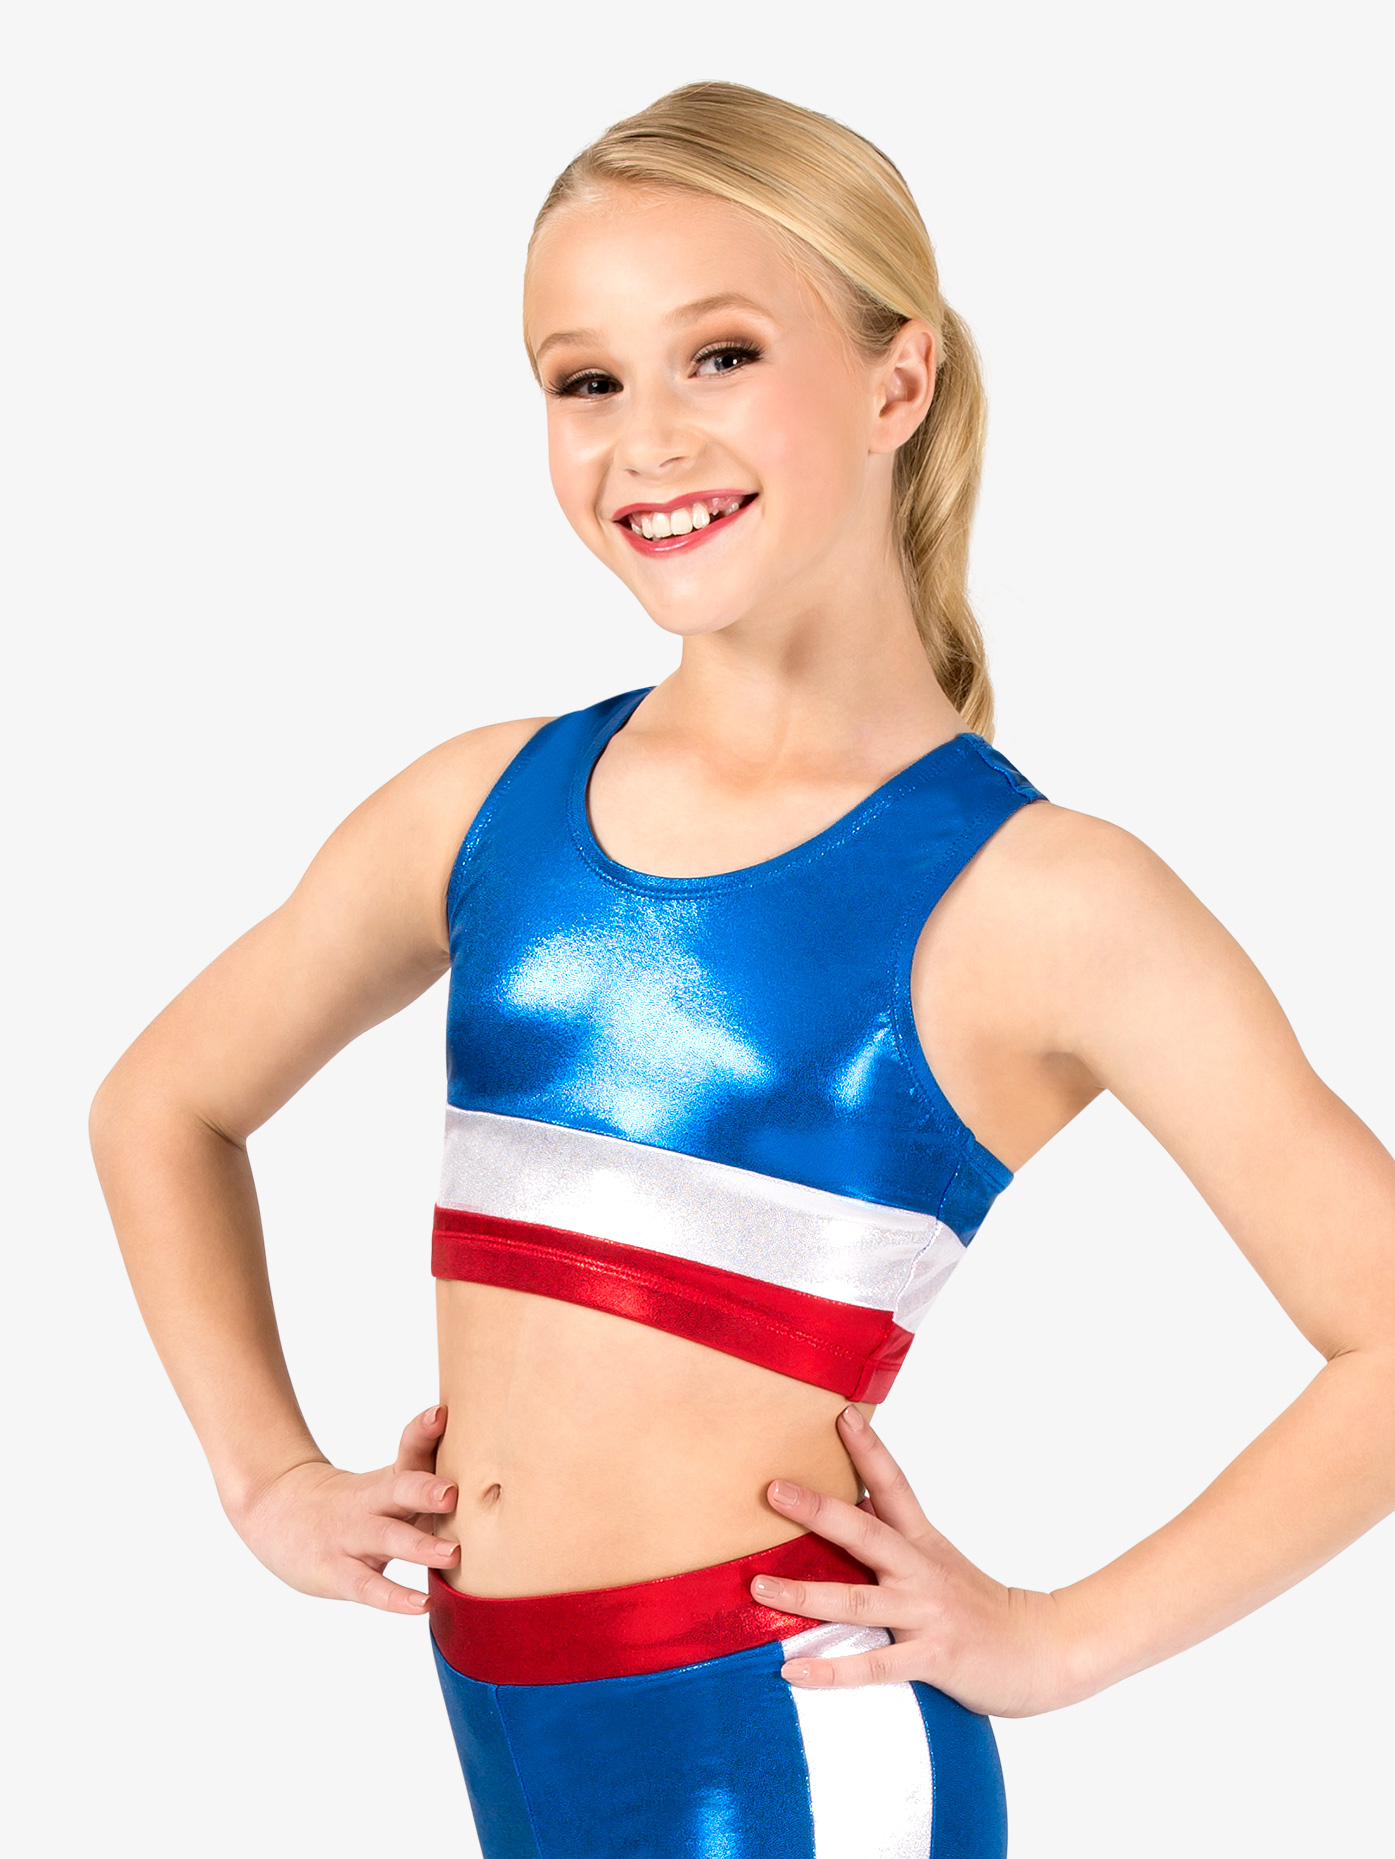 Perfect Balance Girls Gymnastics Patriotic Print Tank Bra Top G687C